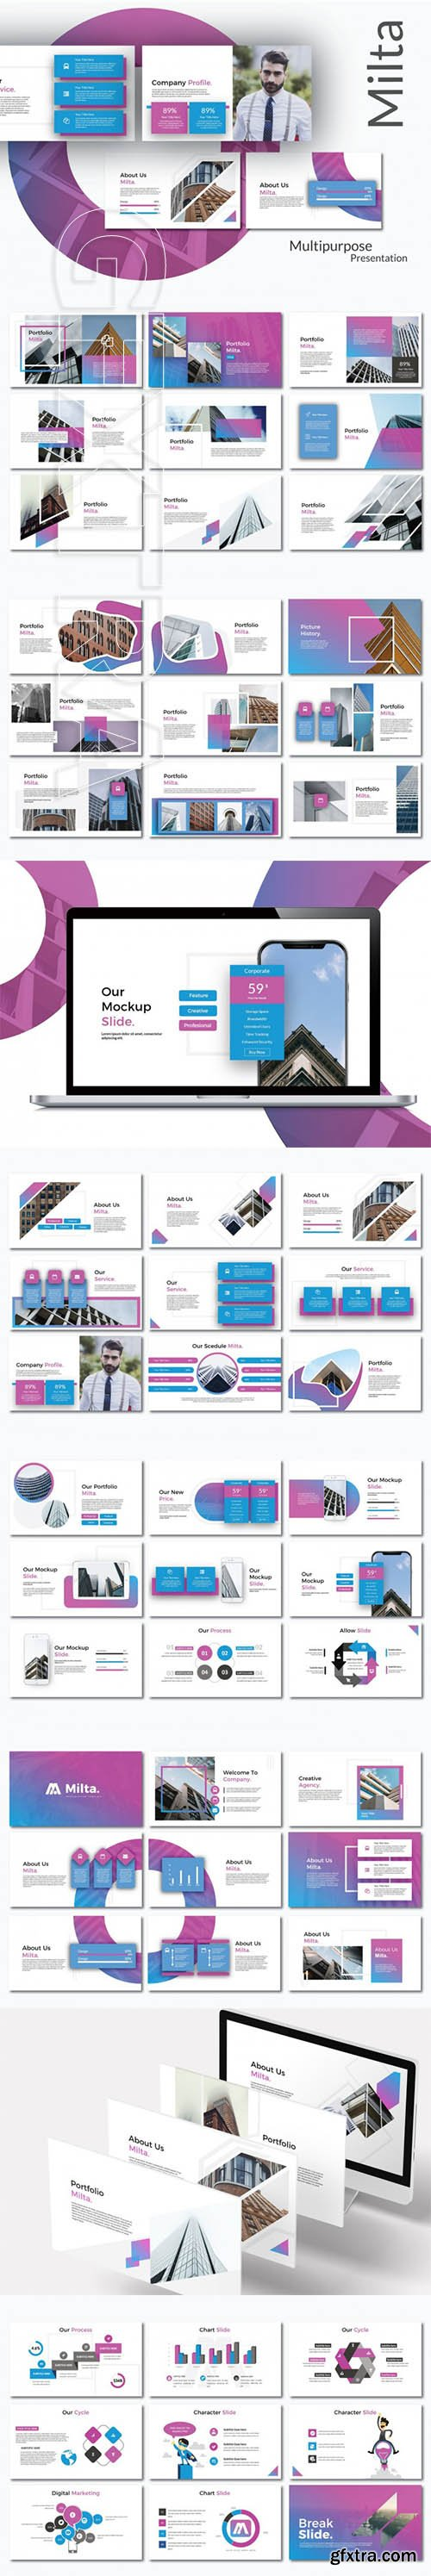 Milta Powerpoint Template